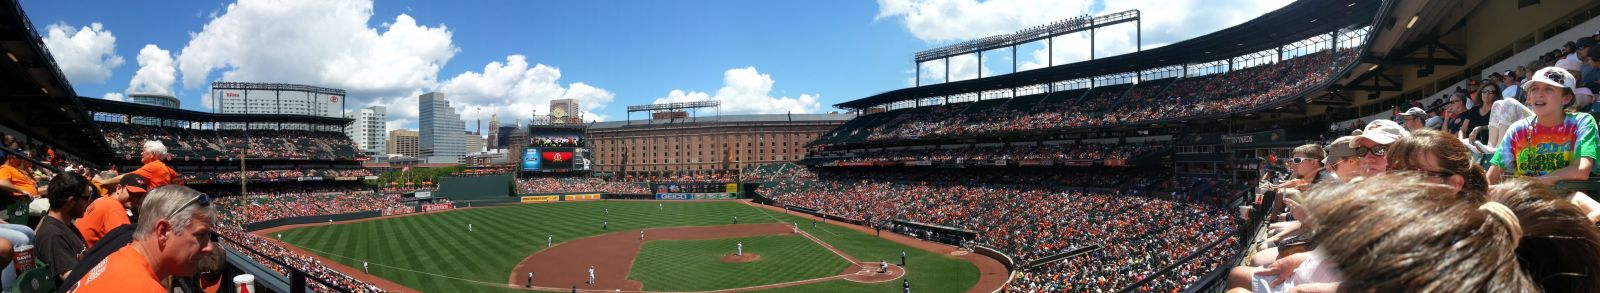 Baltimore Orioles Seating Guide Oriole Park